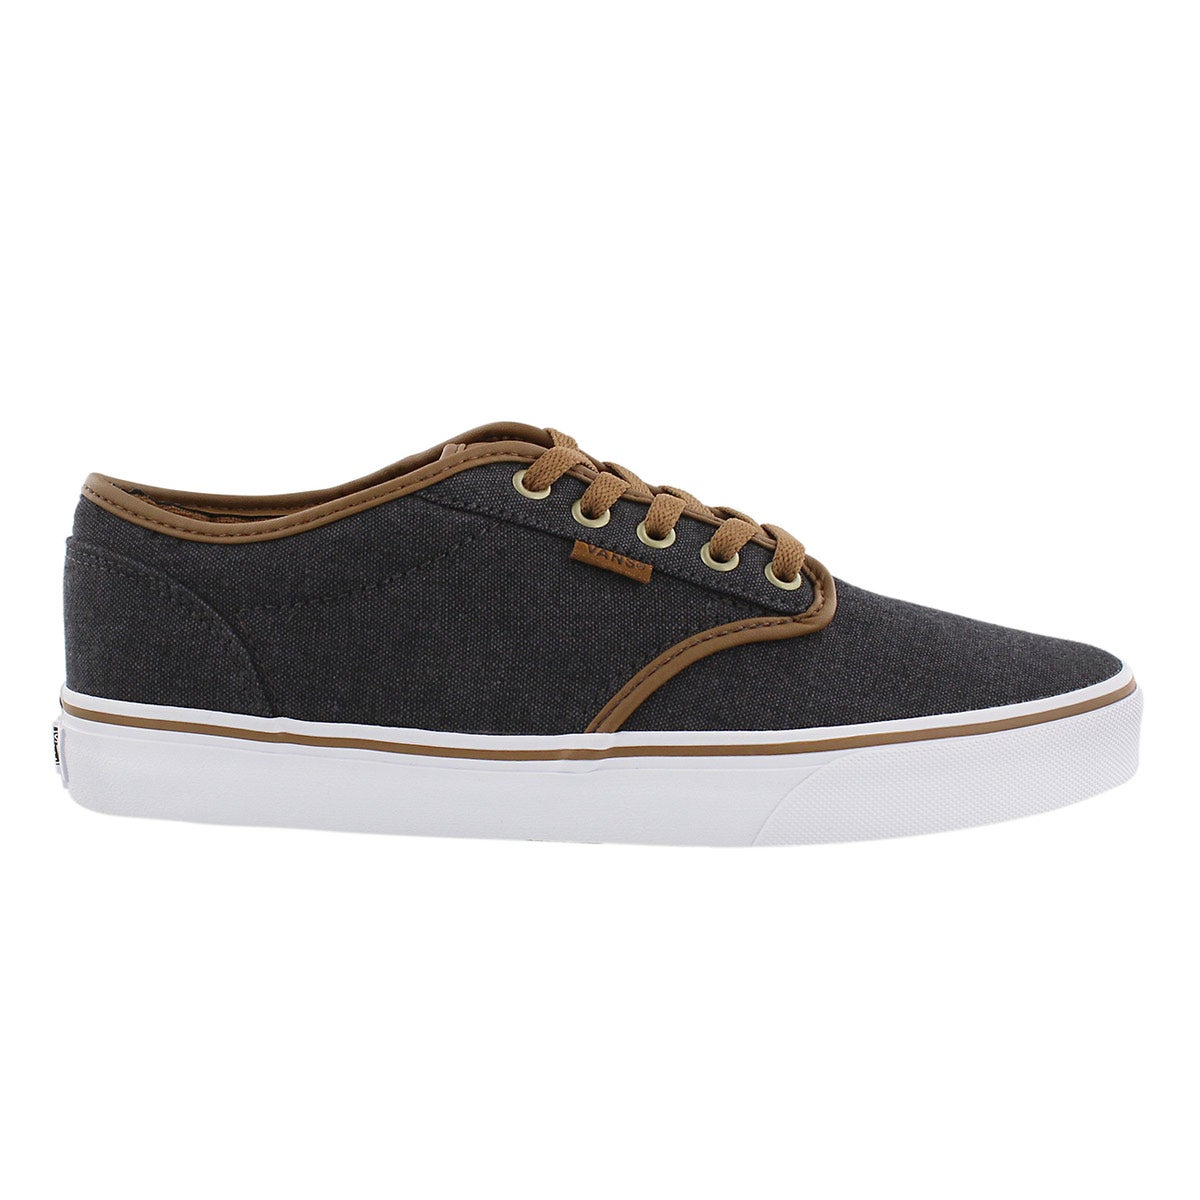 Mns Atwood blk/brown laceup sneaker